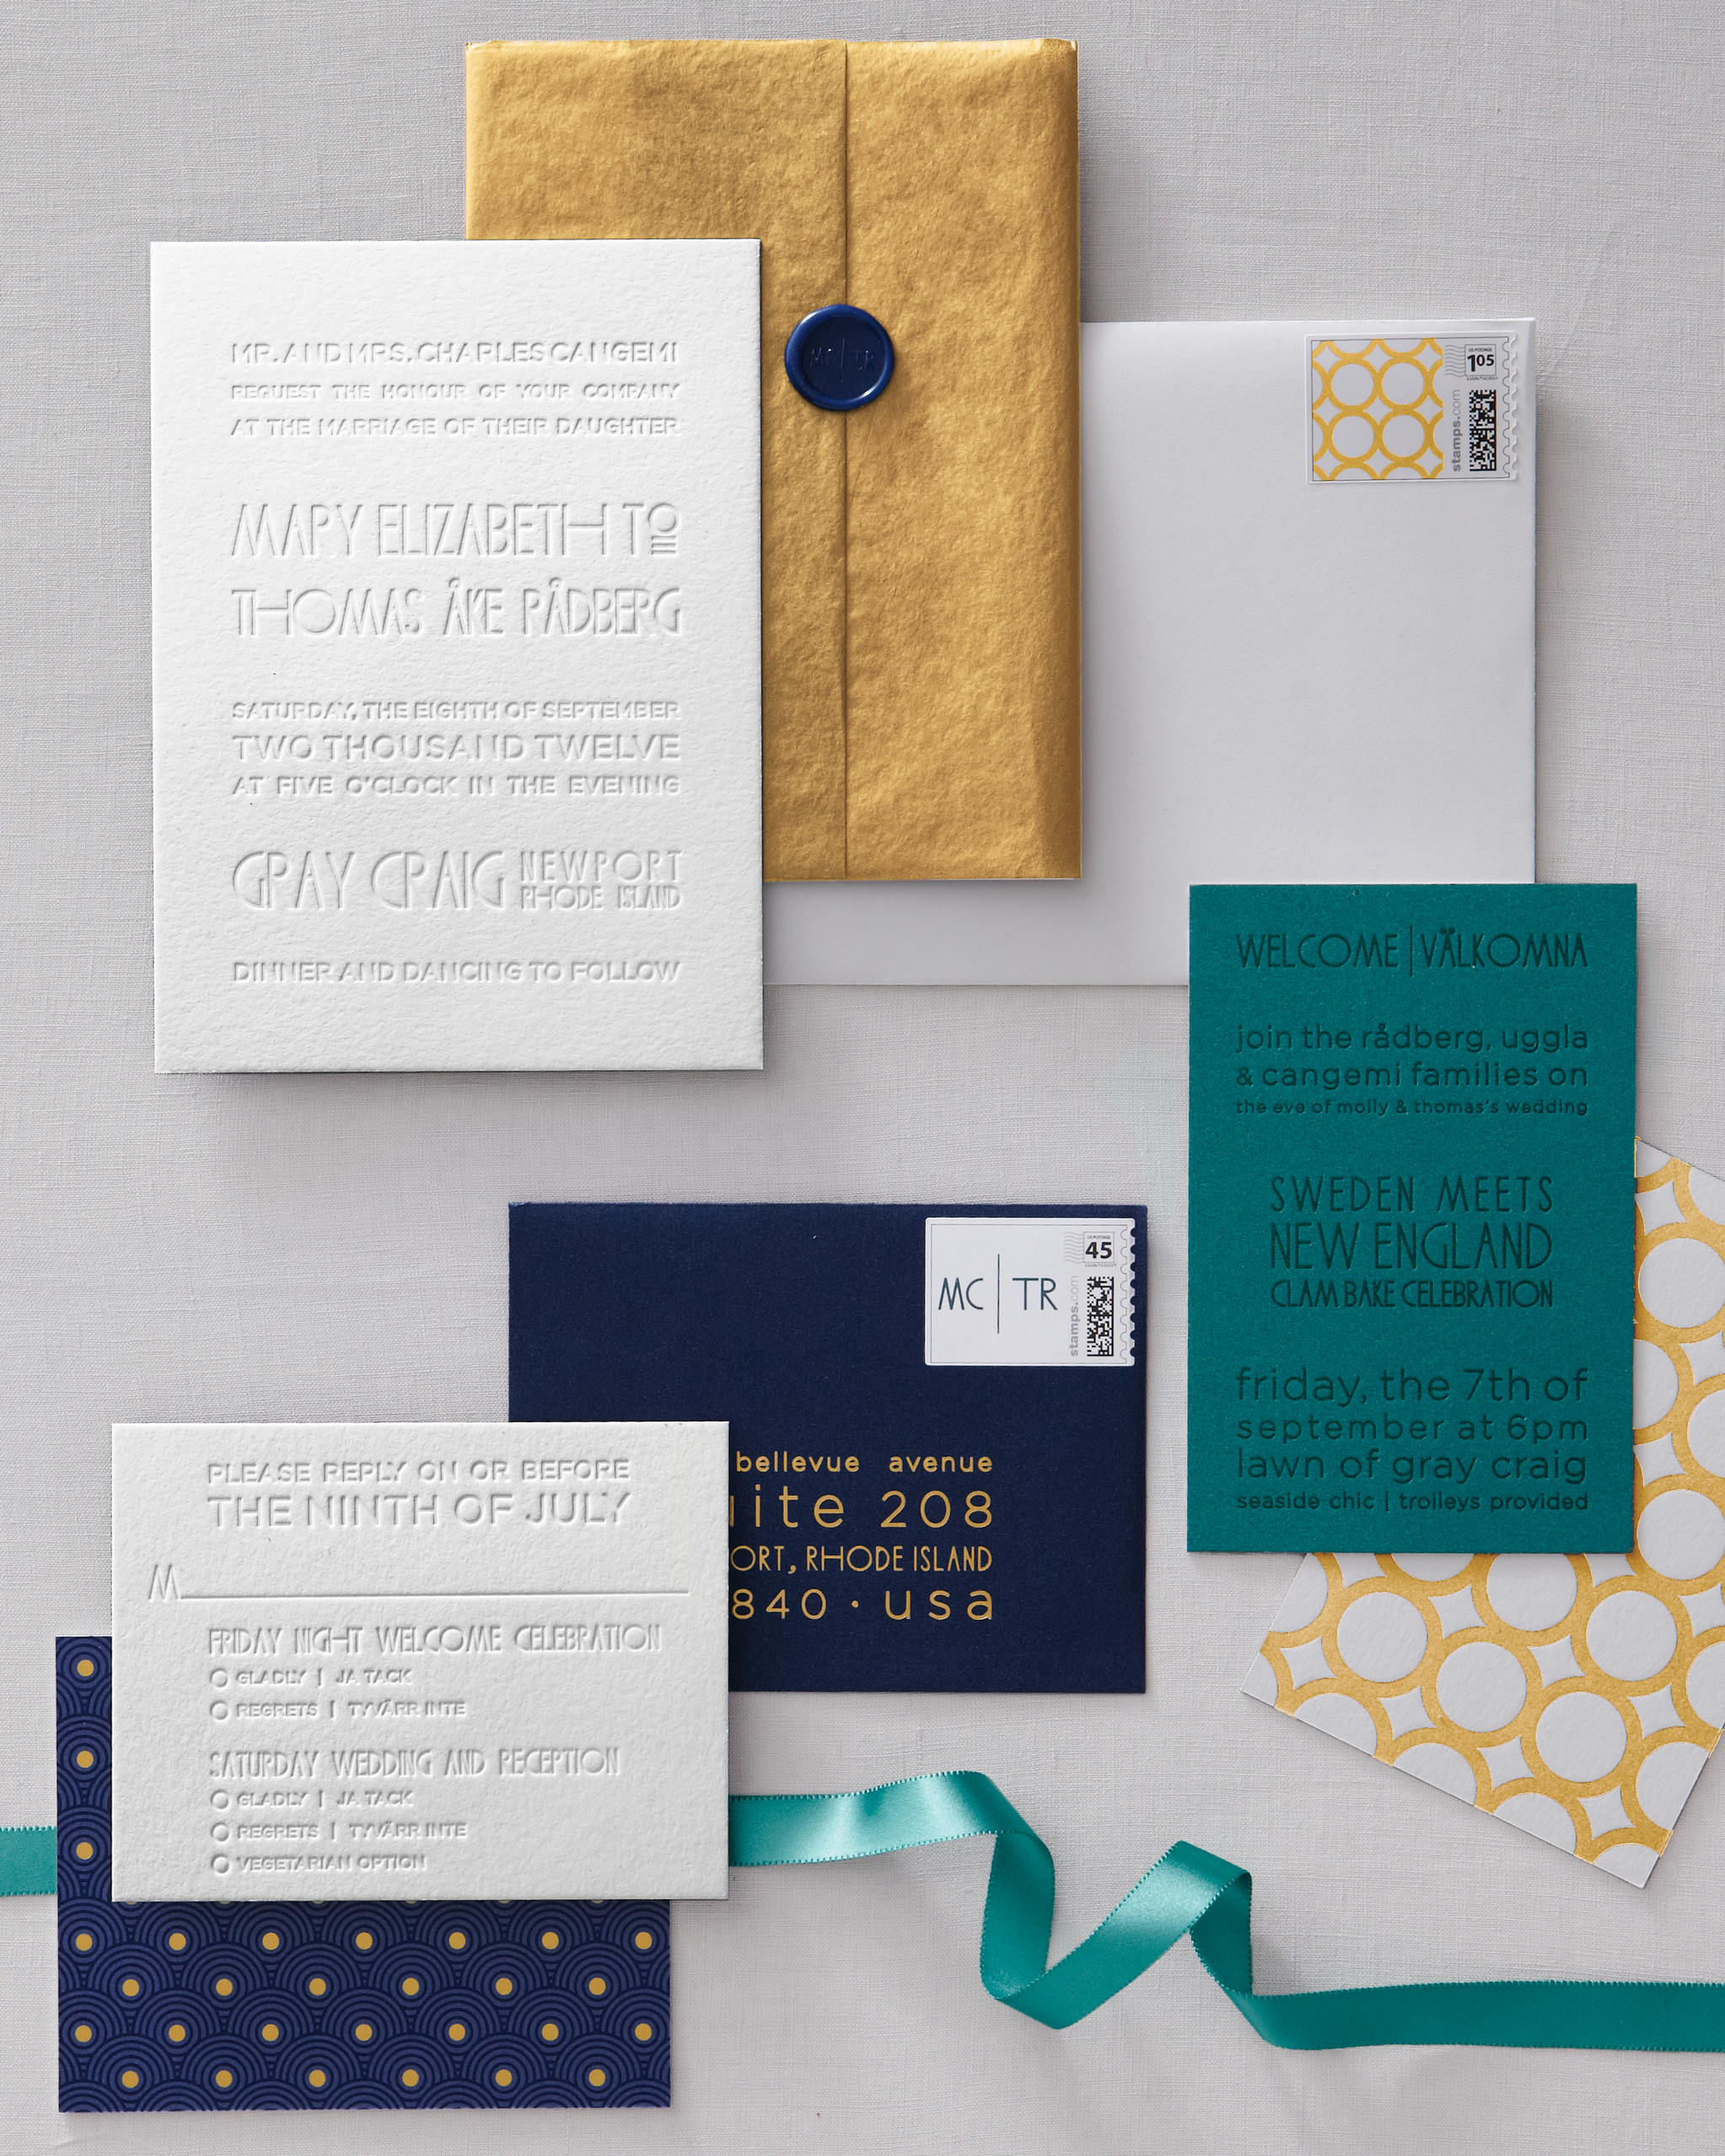 molly-thomas-invitations-475-mwd110213.jpg